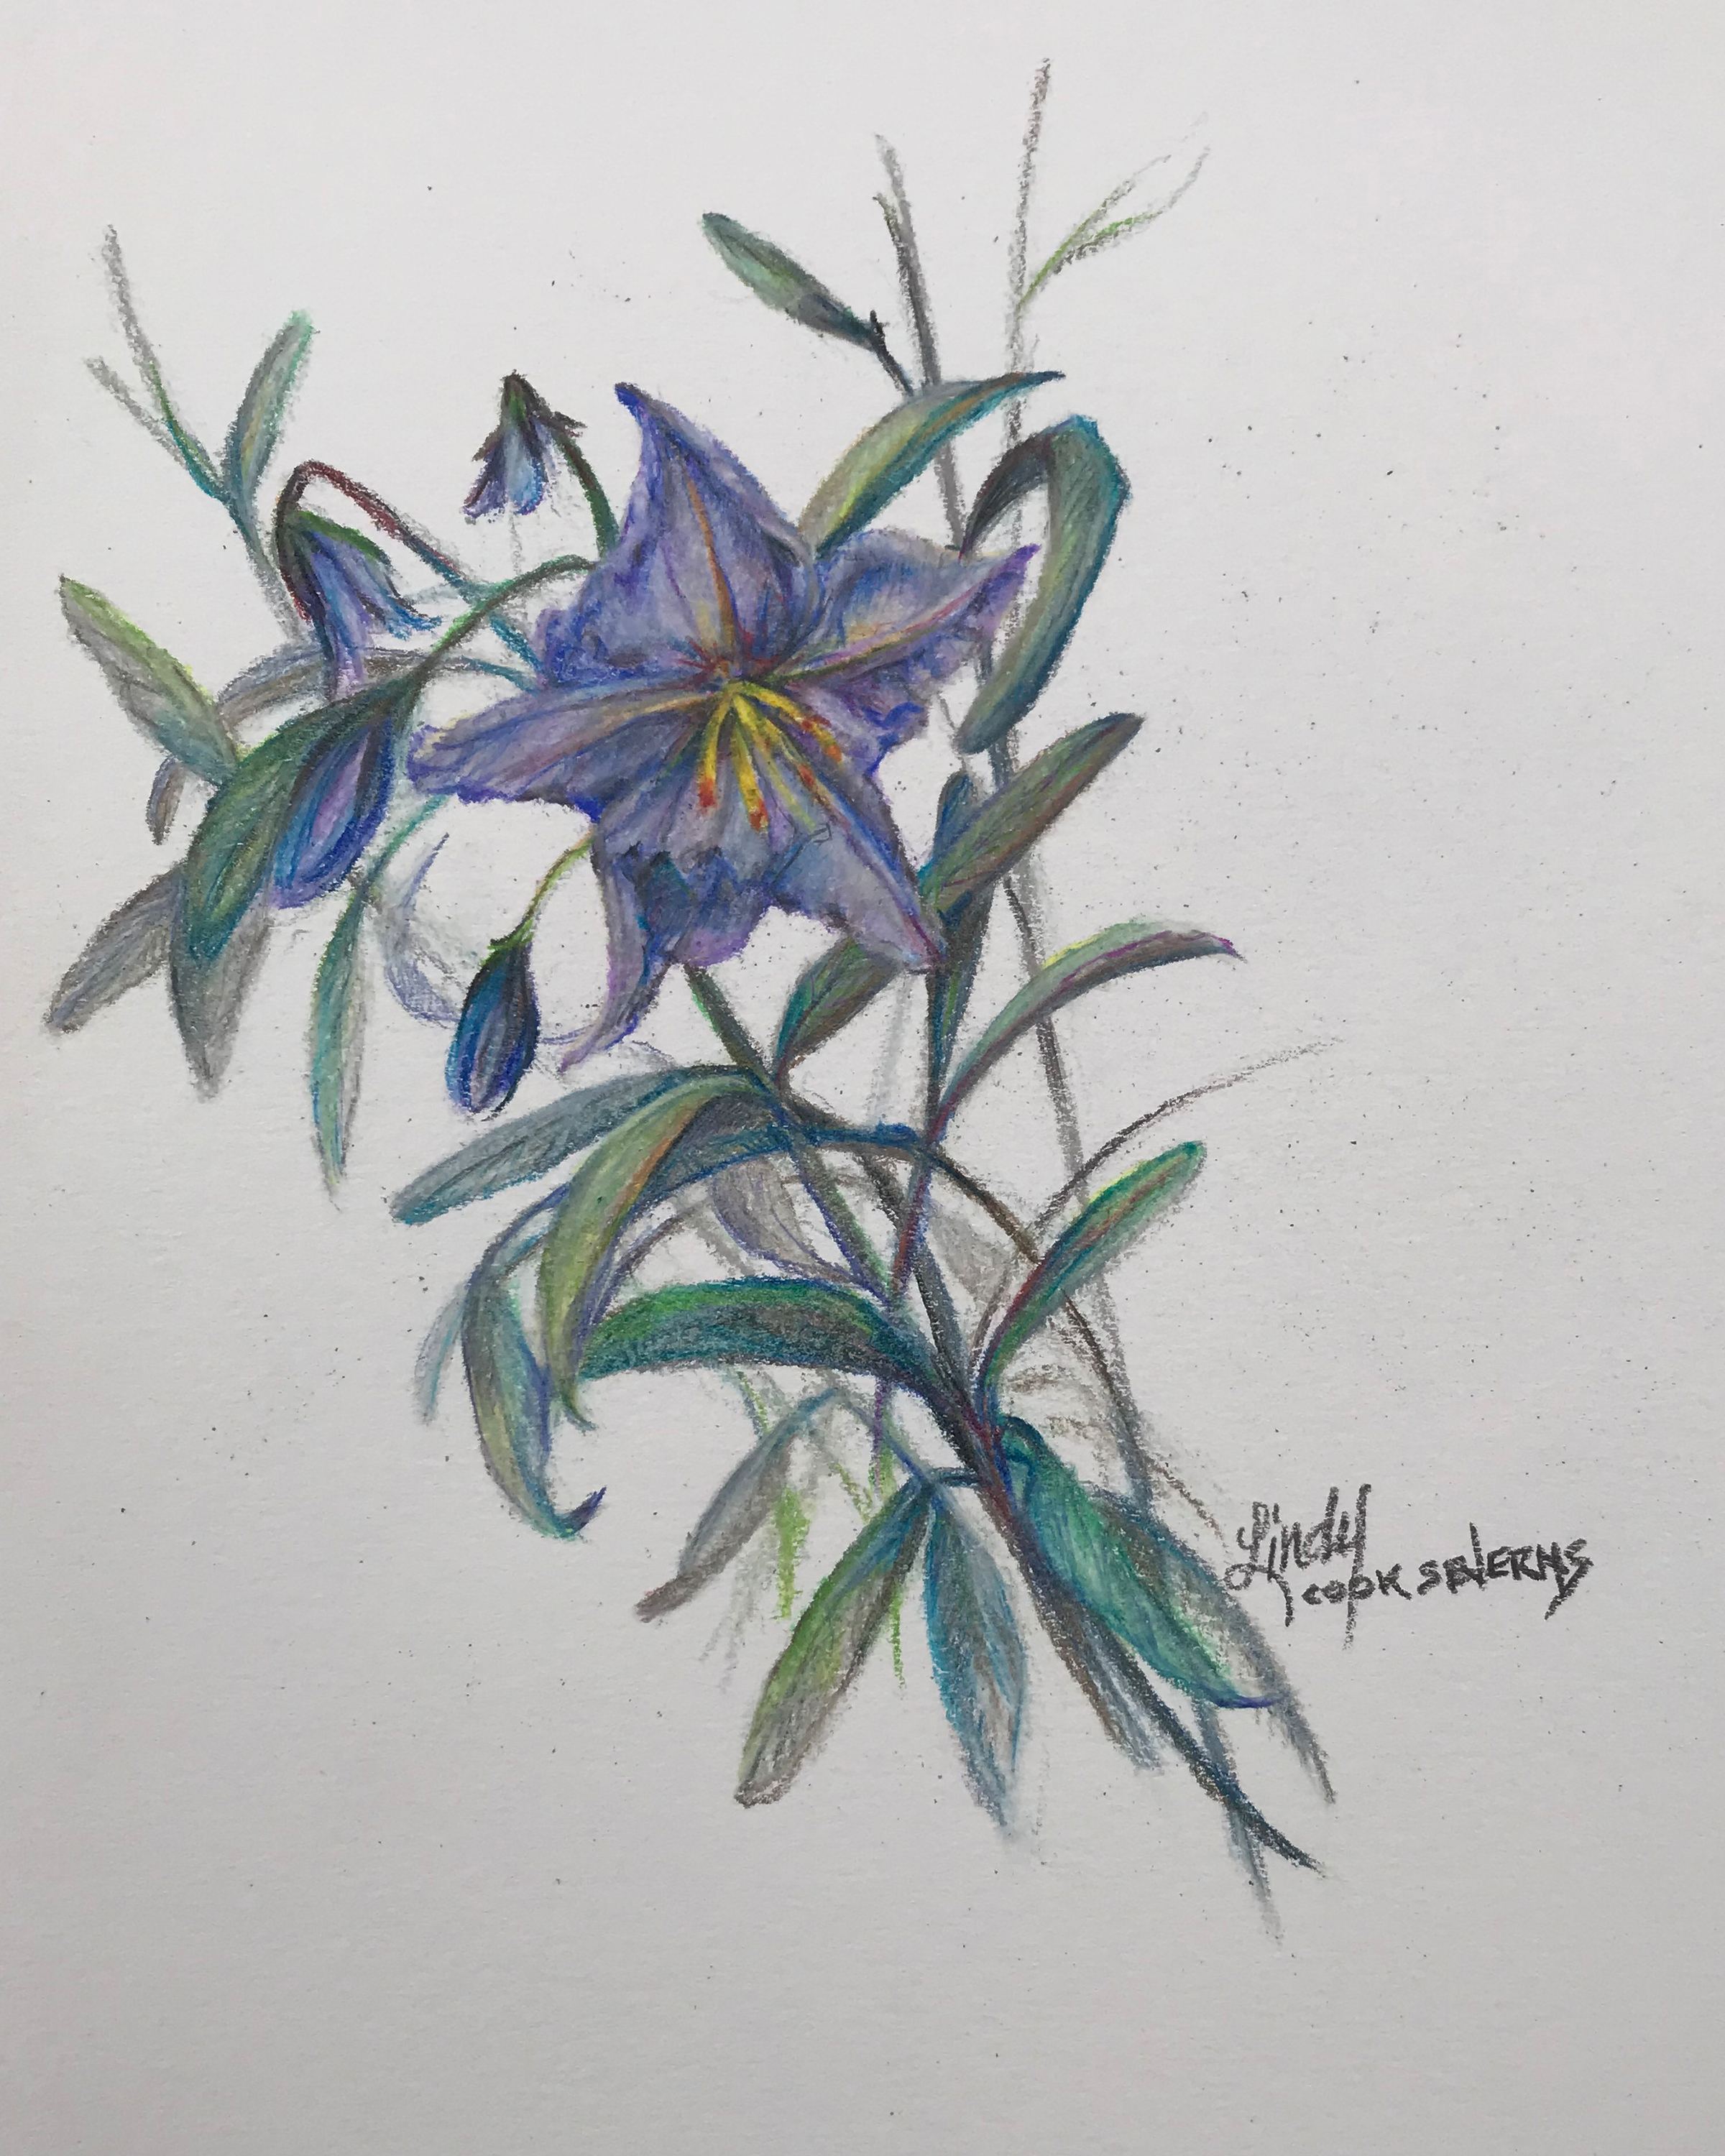 7c18 silver leaf nightshade 10x8 colored pencil lindy cook severns hnozcv